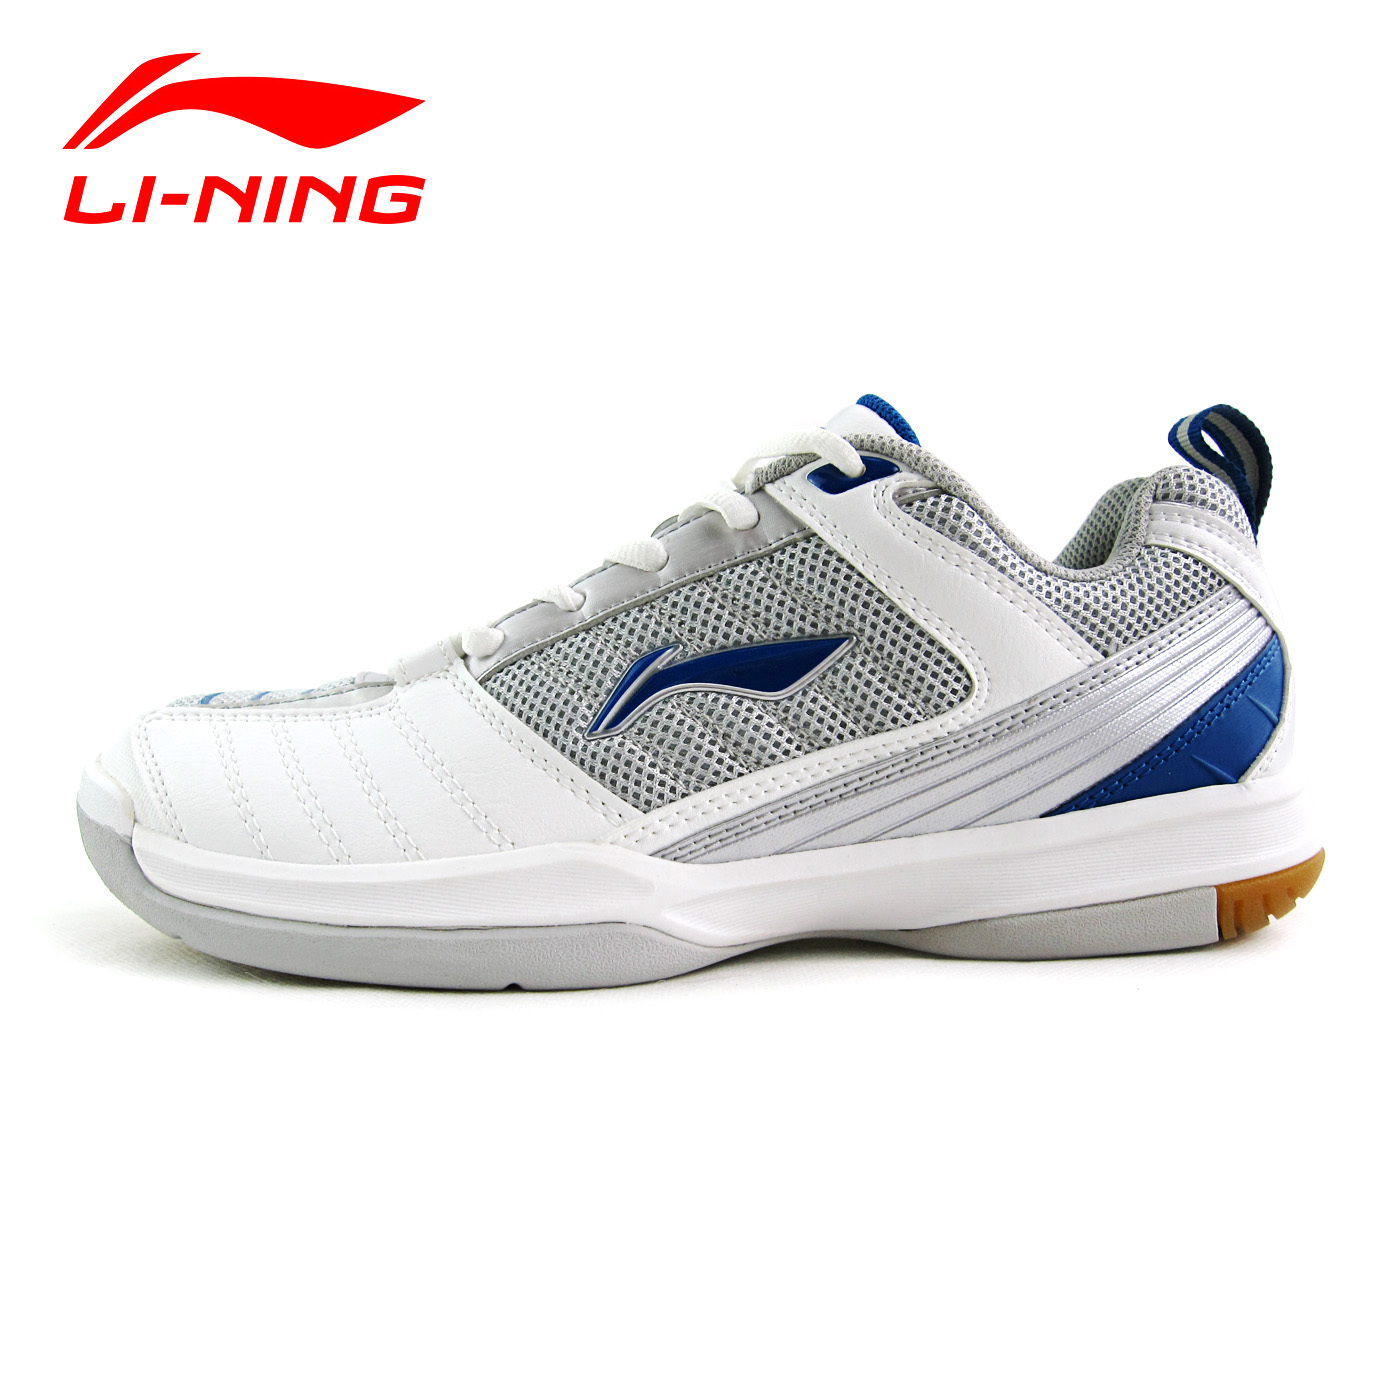 Li ning badminton shoes authentic men/LI-NINGAYTE-029 sports shoes badminton shoes free shipping